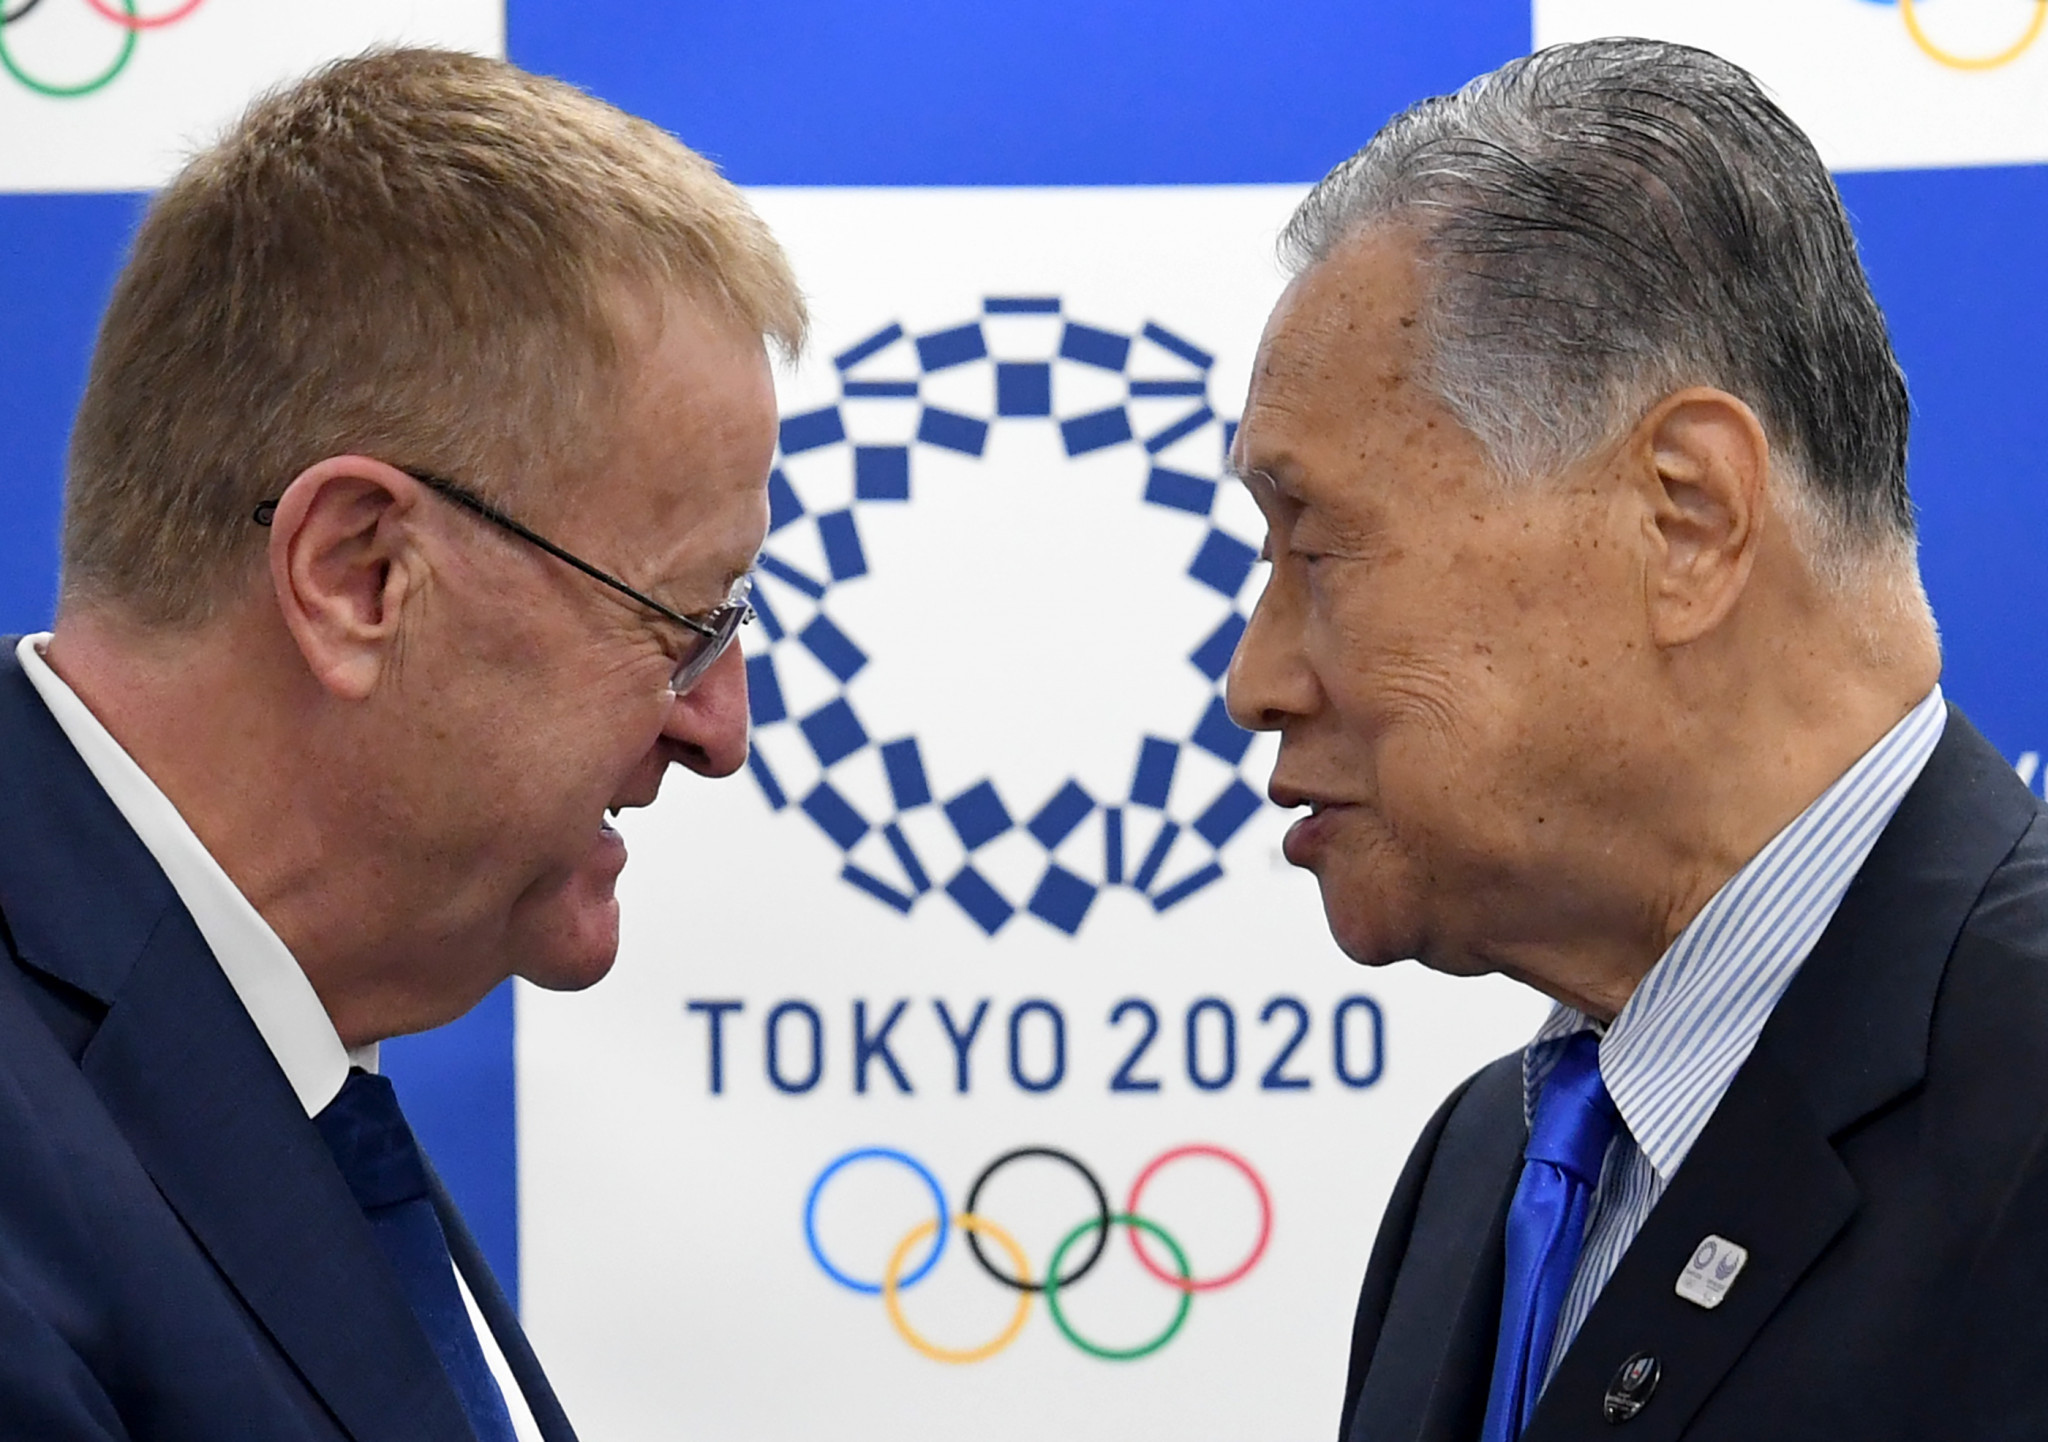 Tokyo 2020 President keen to learn from Pyeongchang 2018 when observing Winter Olympics